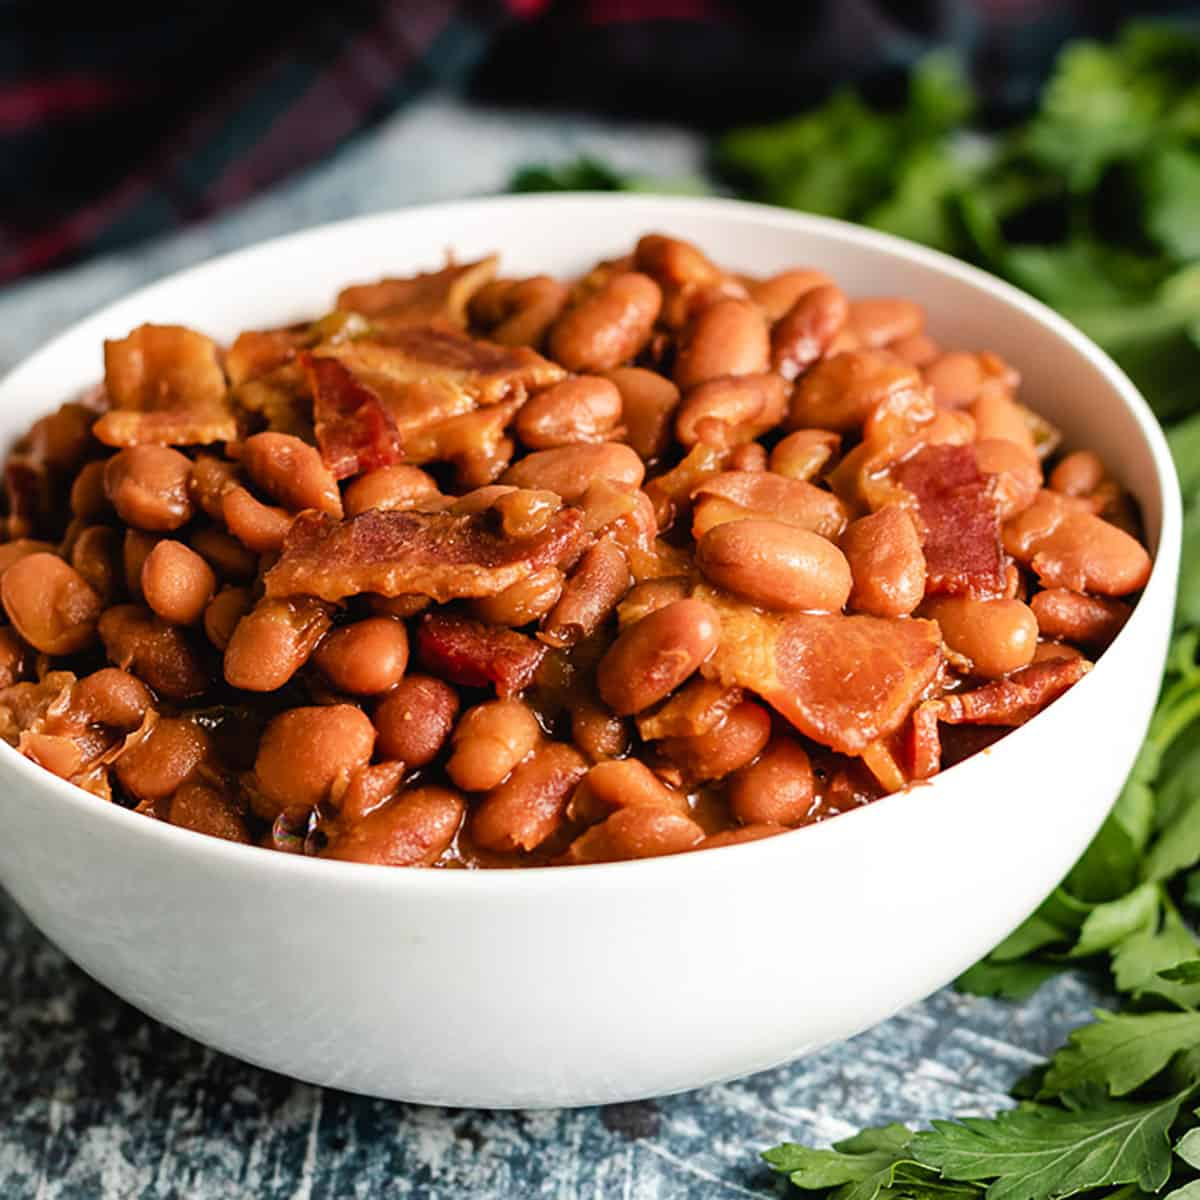 A white bowl filled with Instant Pot baked beans.